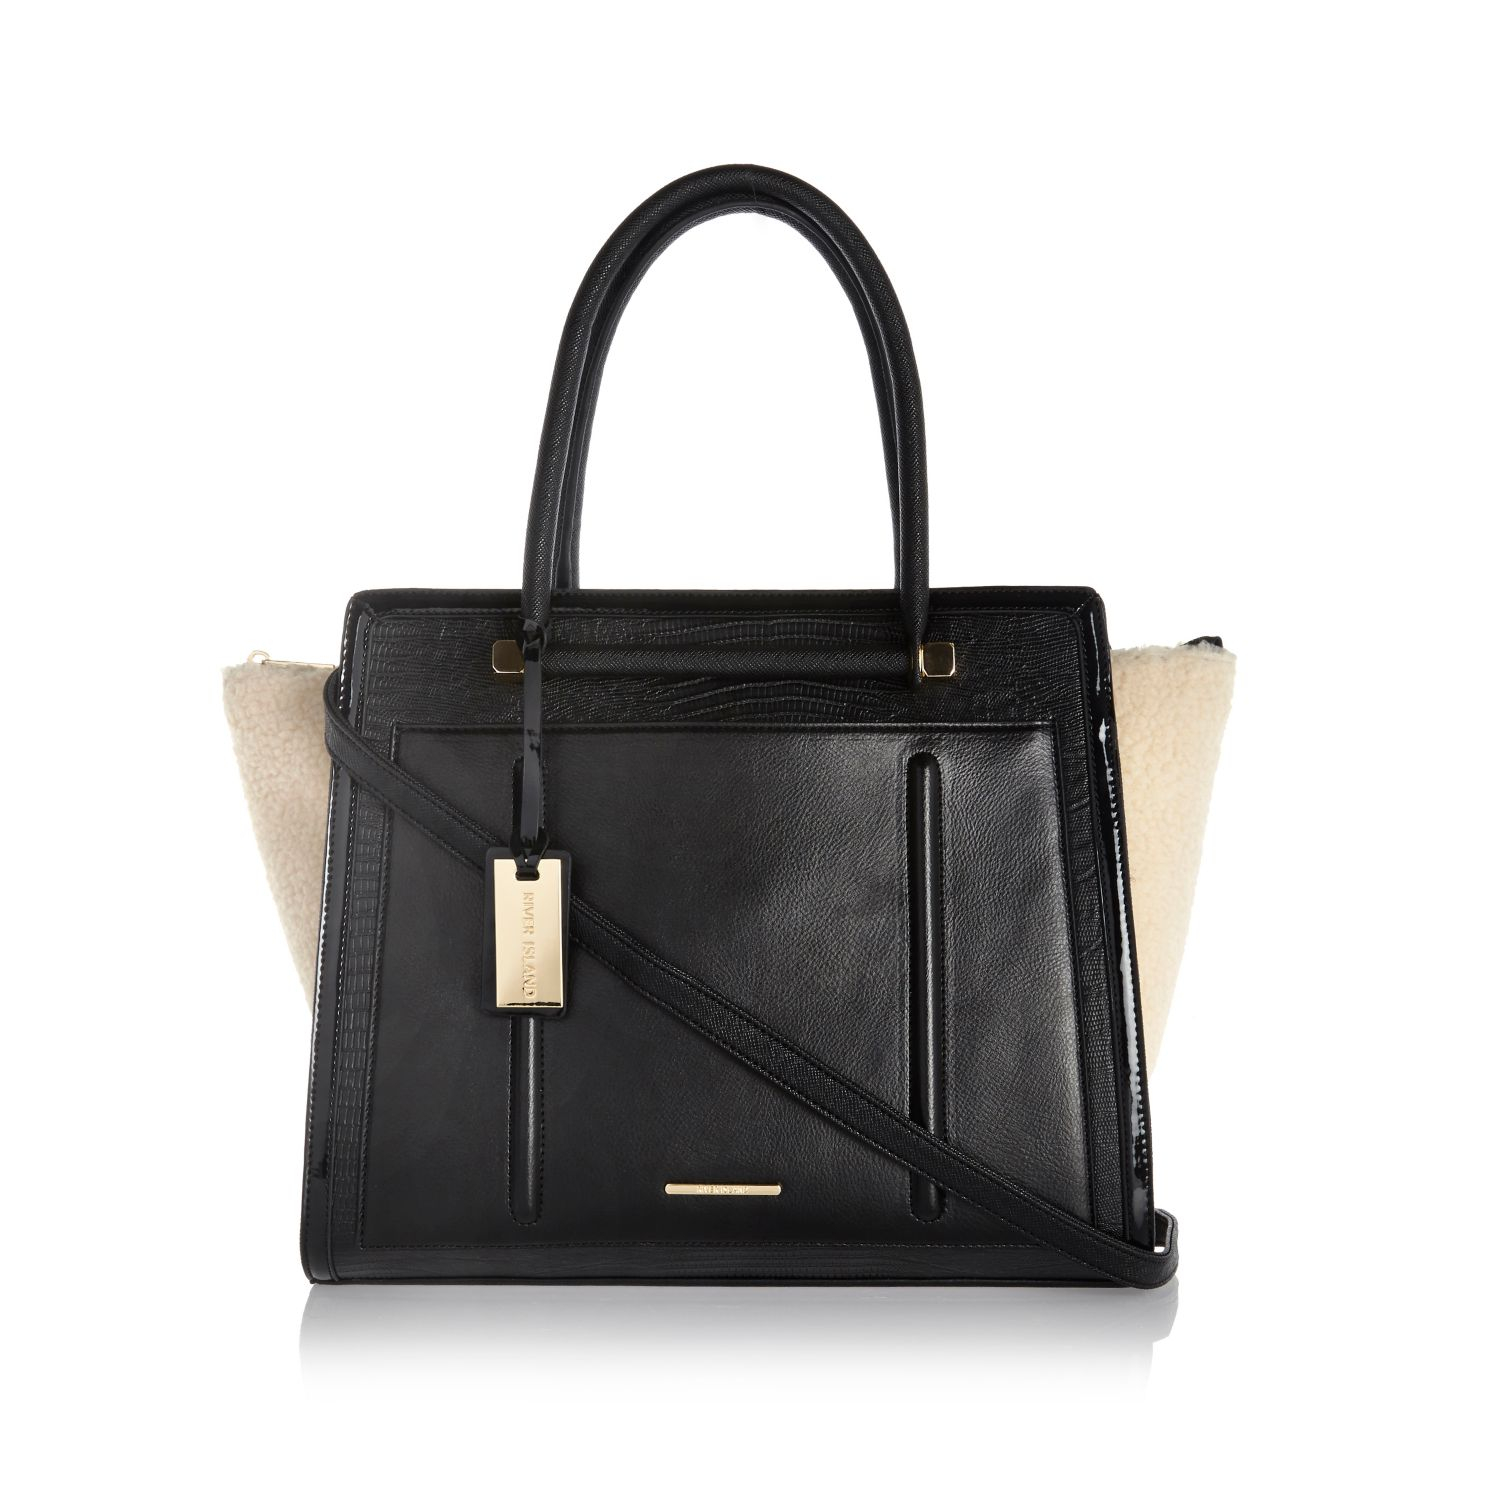 7c0bf1848d River Island Black Shearling Panel Winged Tote Bag in Black - Lyst